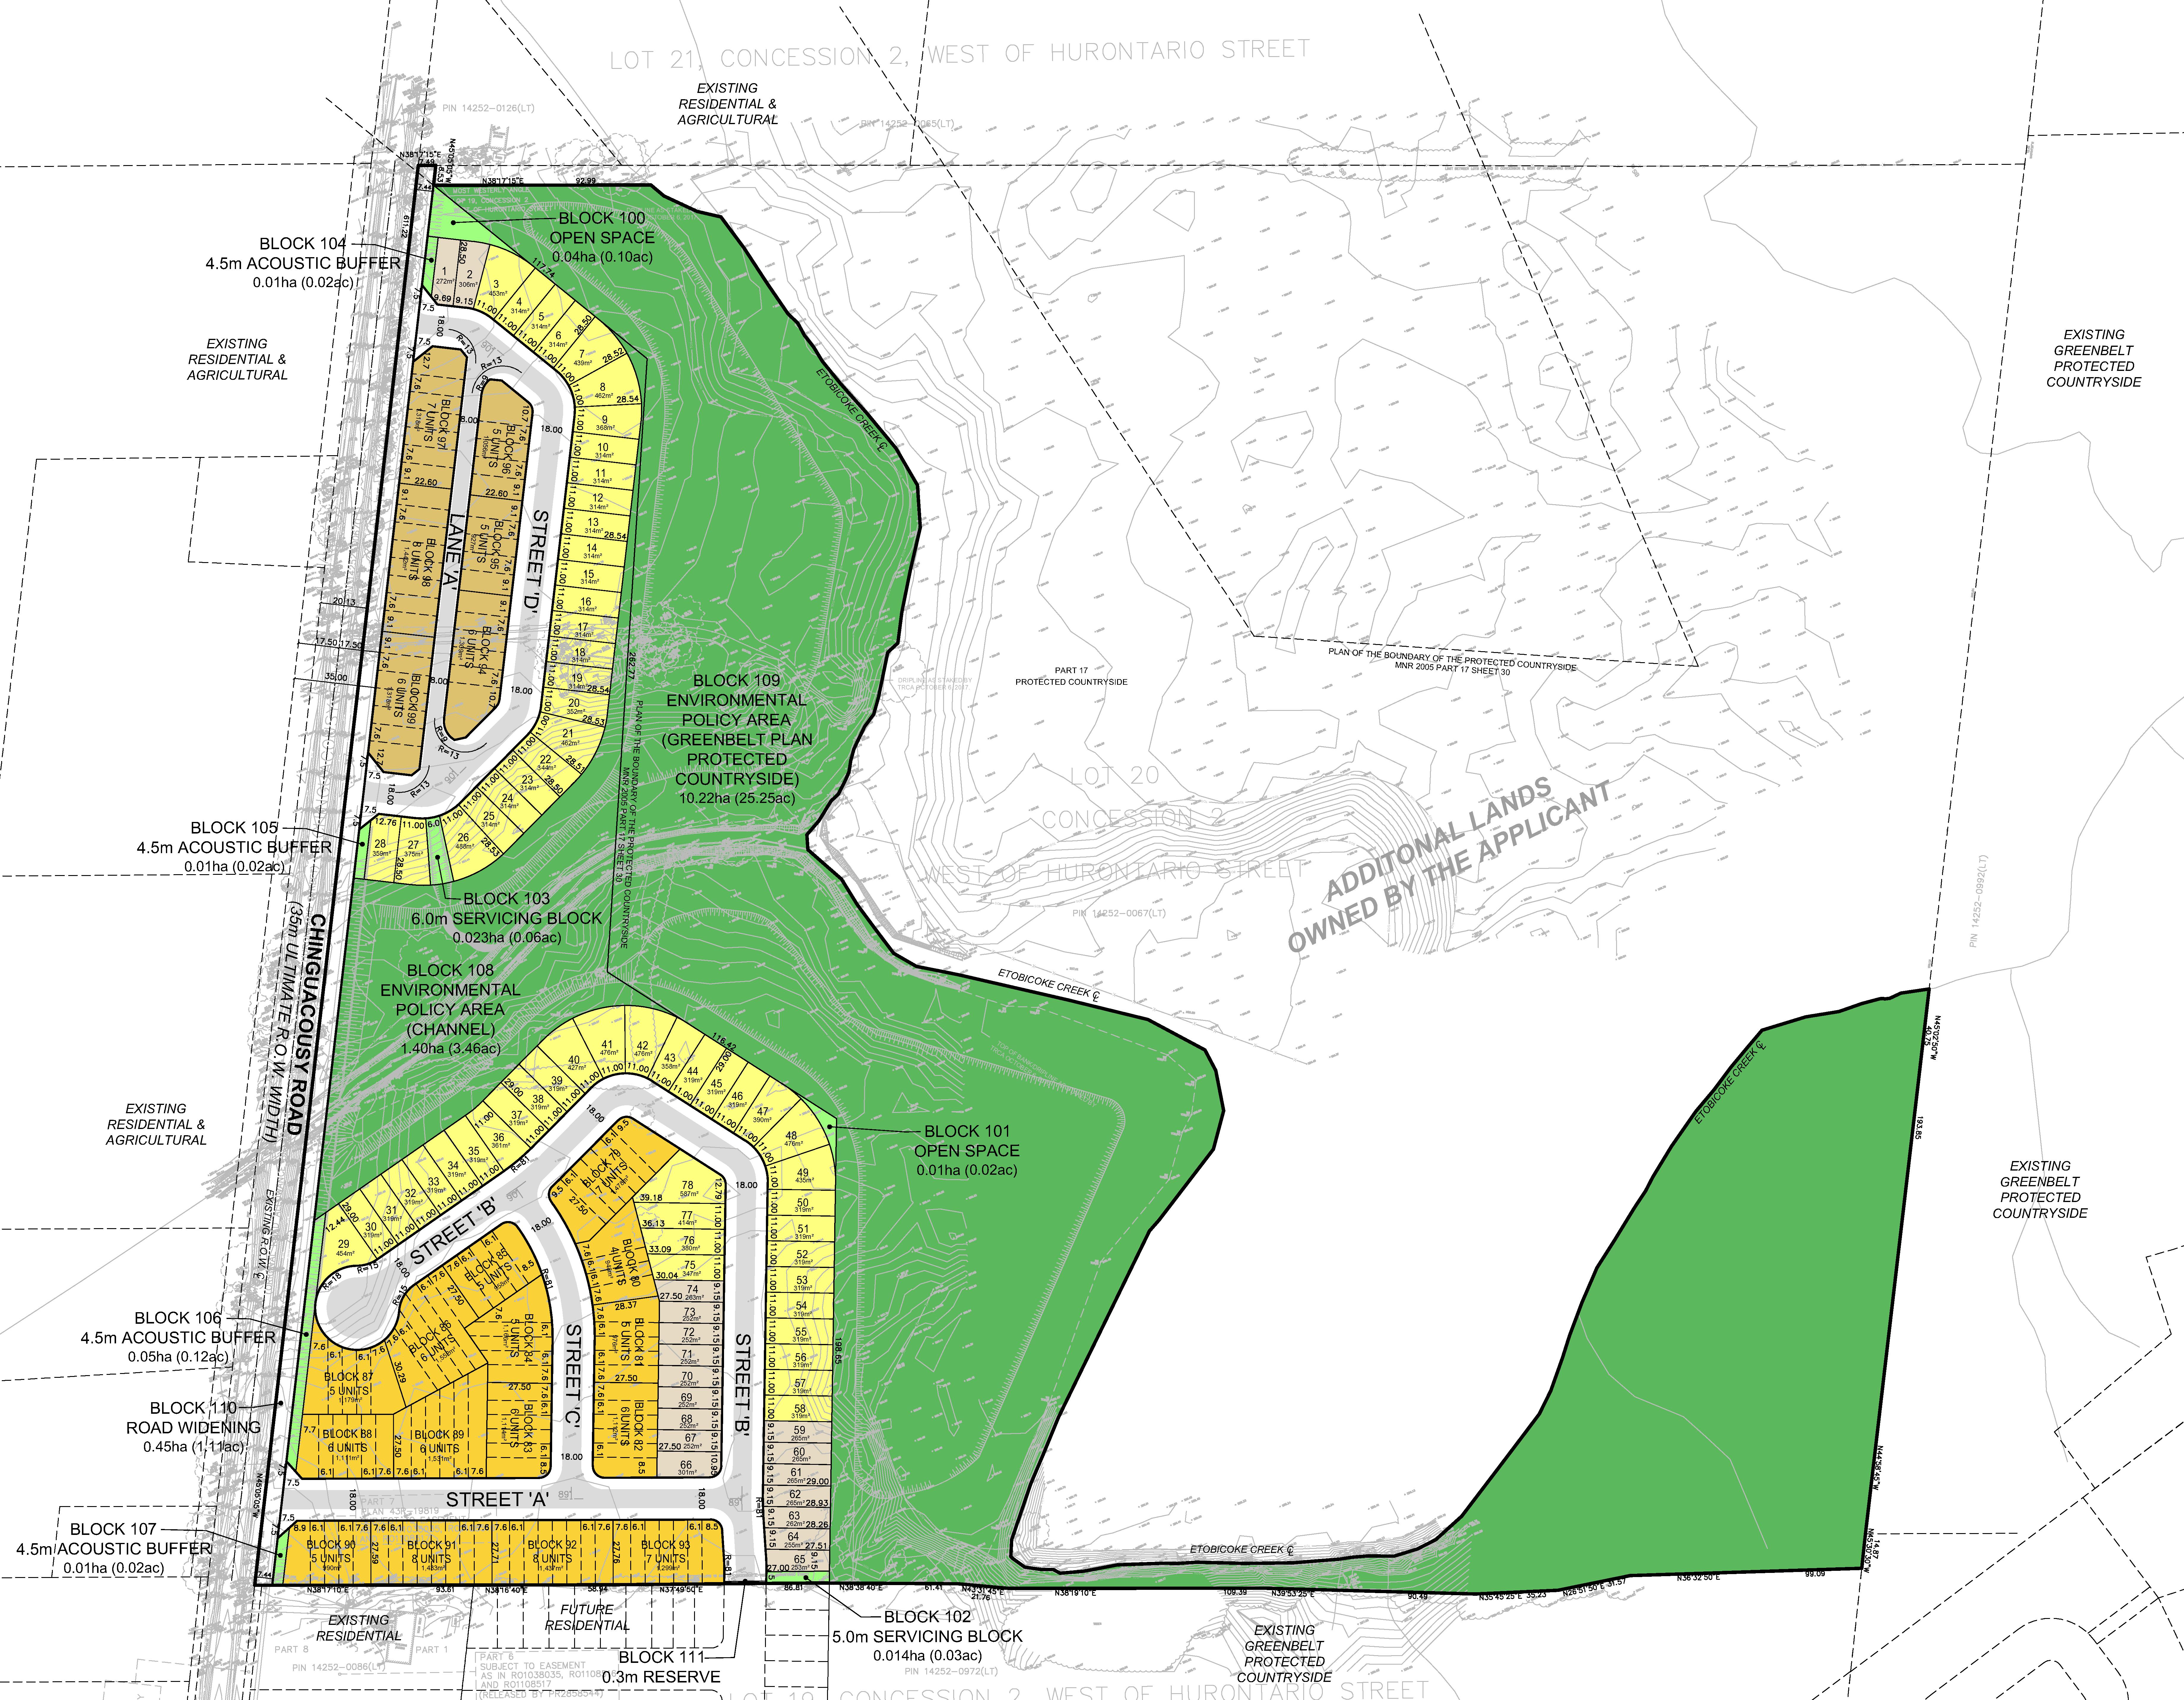 Survey of the Application for 12529 Chinguacousy Road